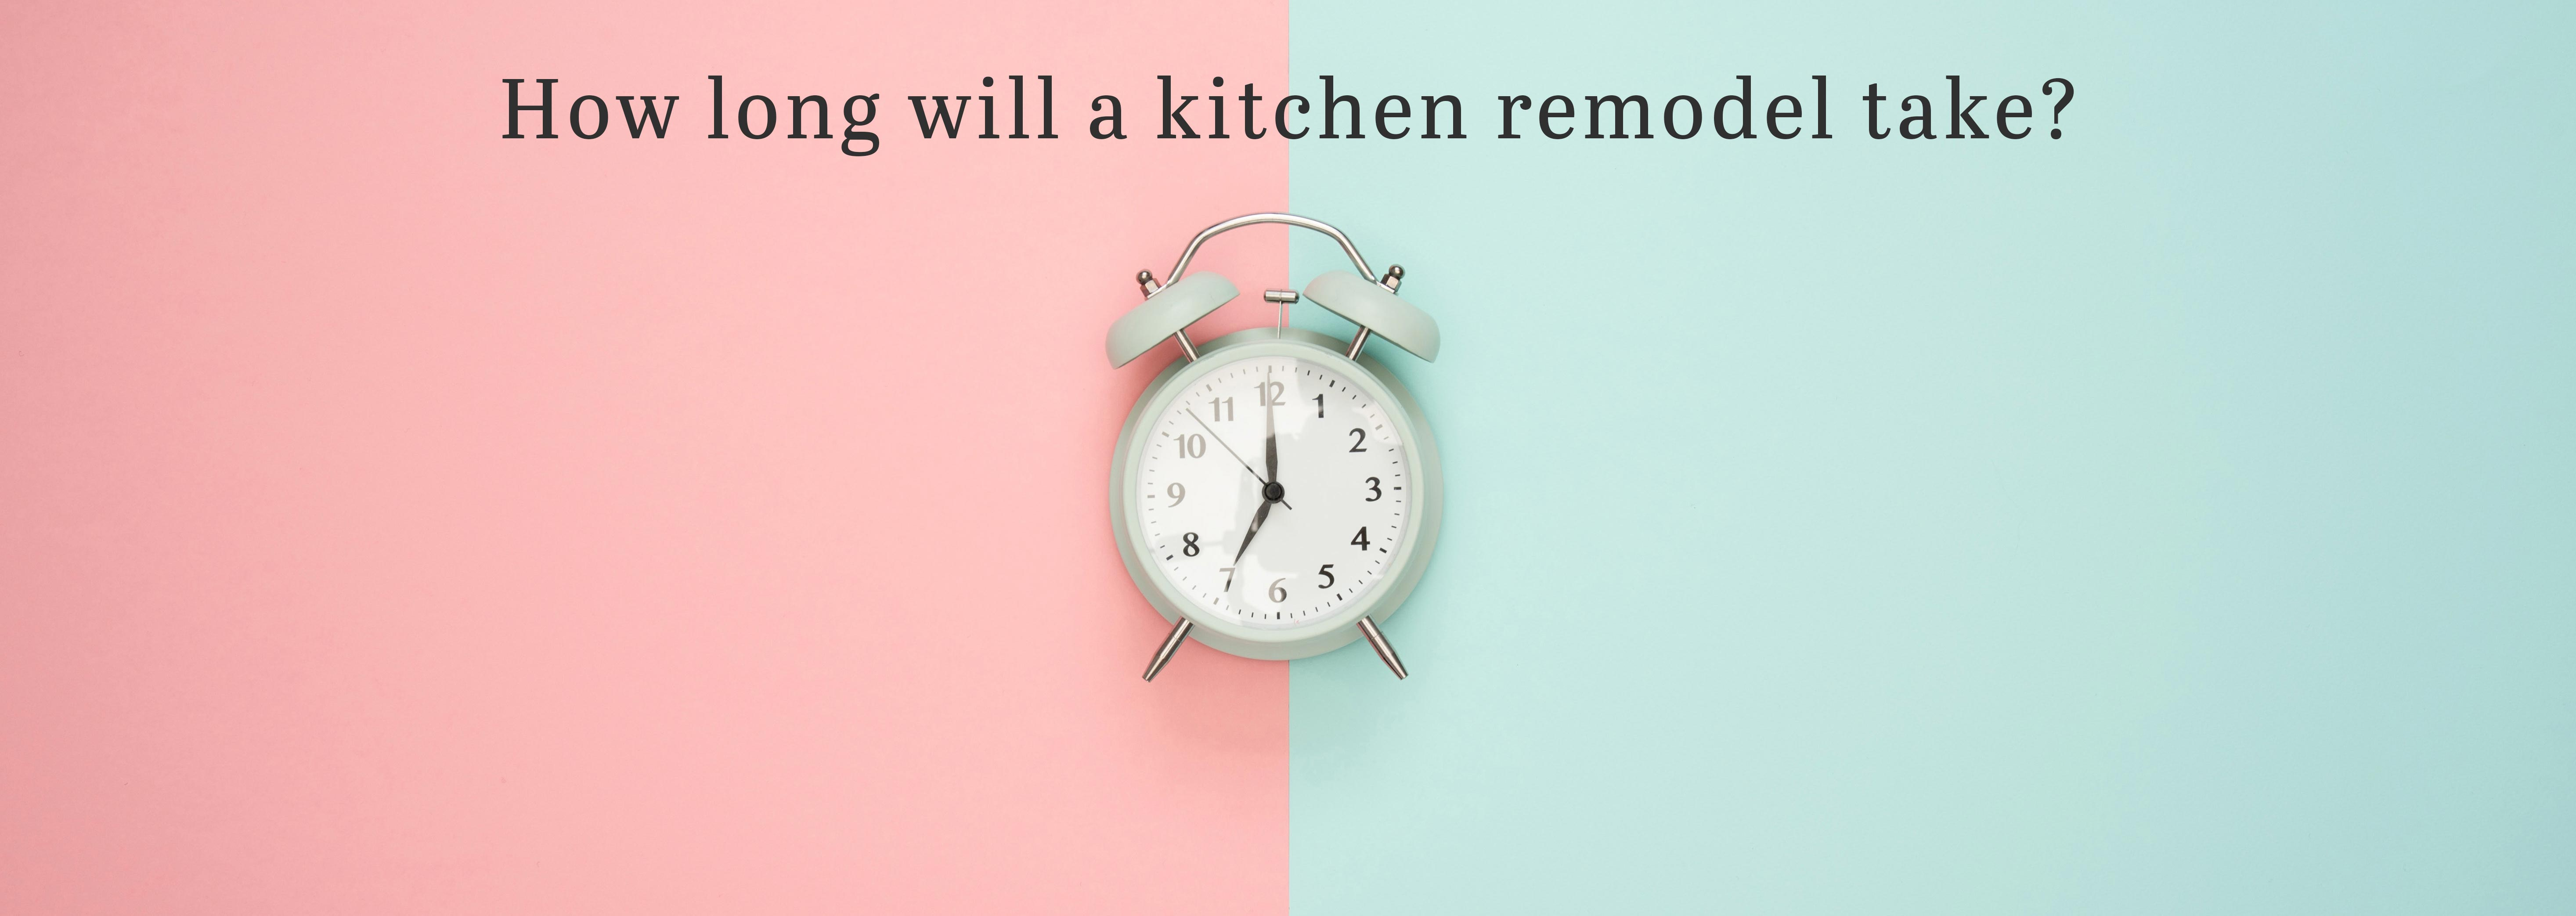 How long will my kitchen remodel take